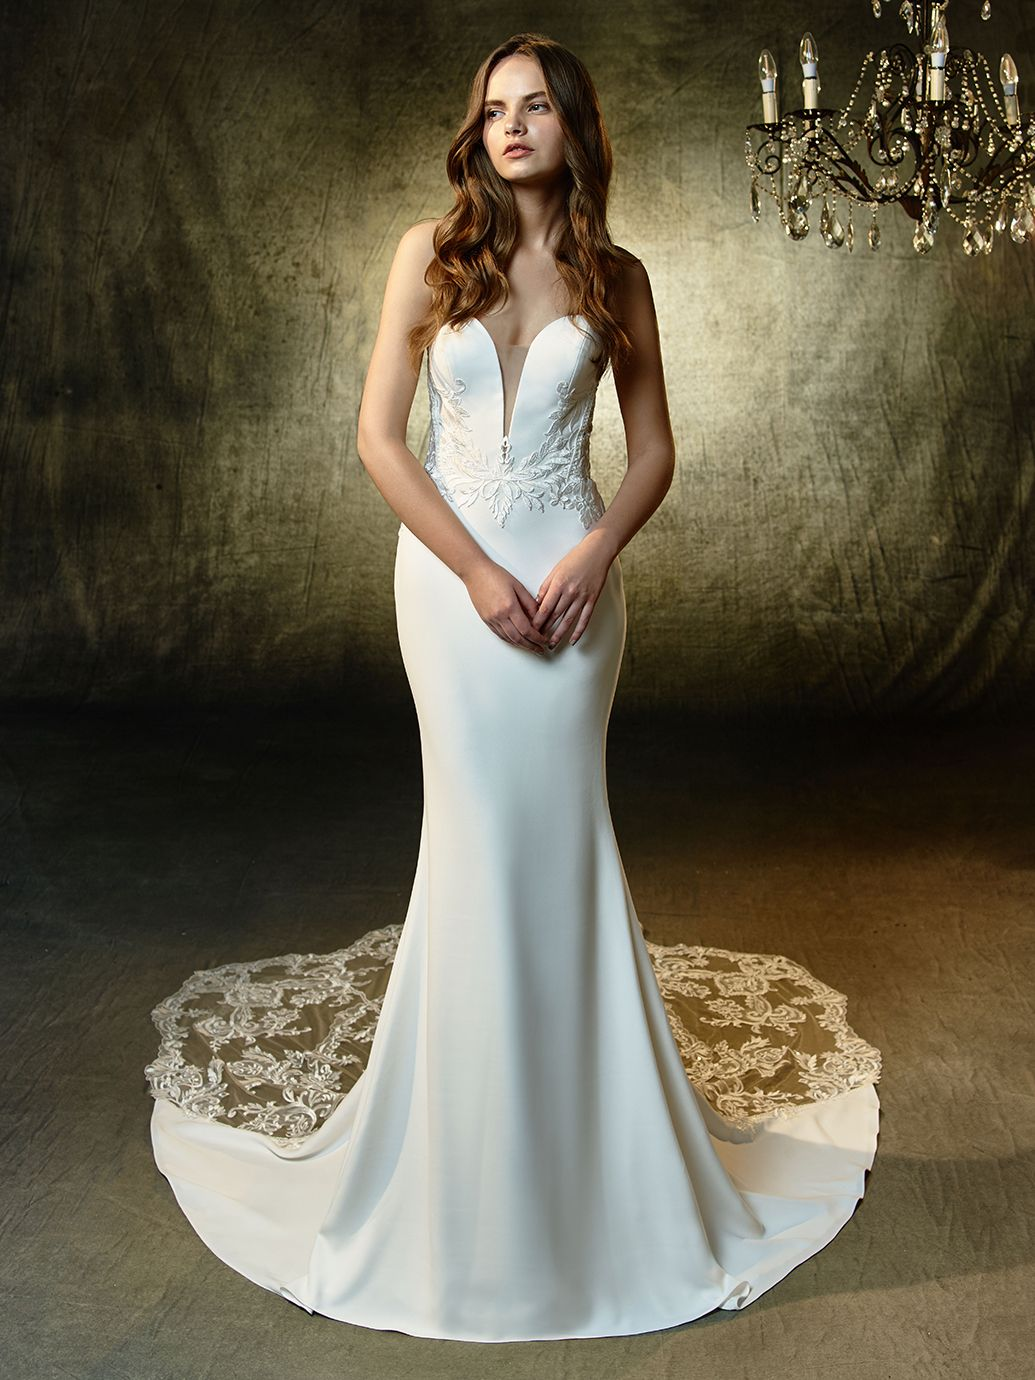 A Sumptuous Mermaid Gown Constructed With Sequin Embroidered Lace On Soft Stretch Georgette The S Enzoani Wedding Dresses Brides Wedding Dress Wedding Dresses [ 1380 x 1035 Pixel ]